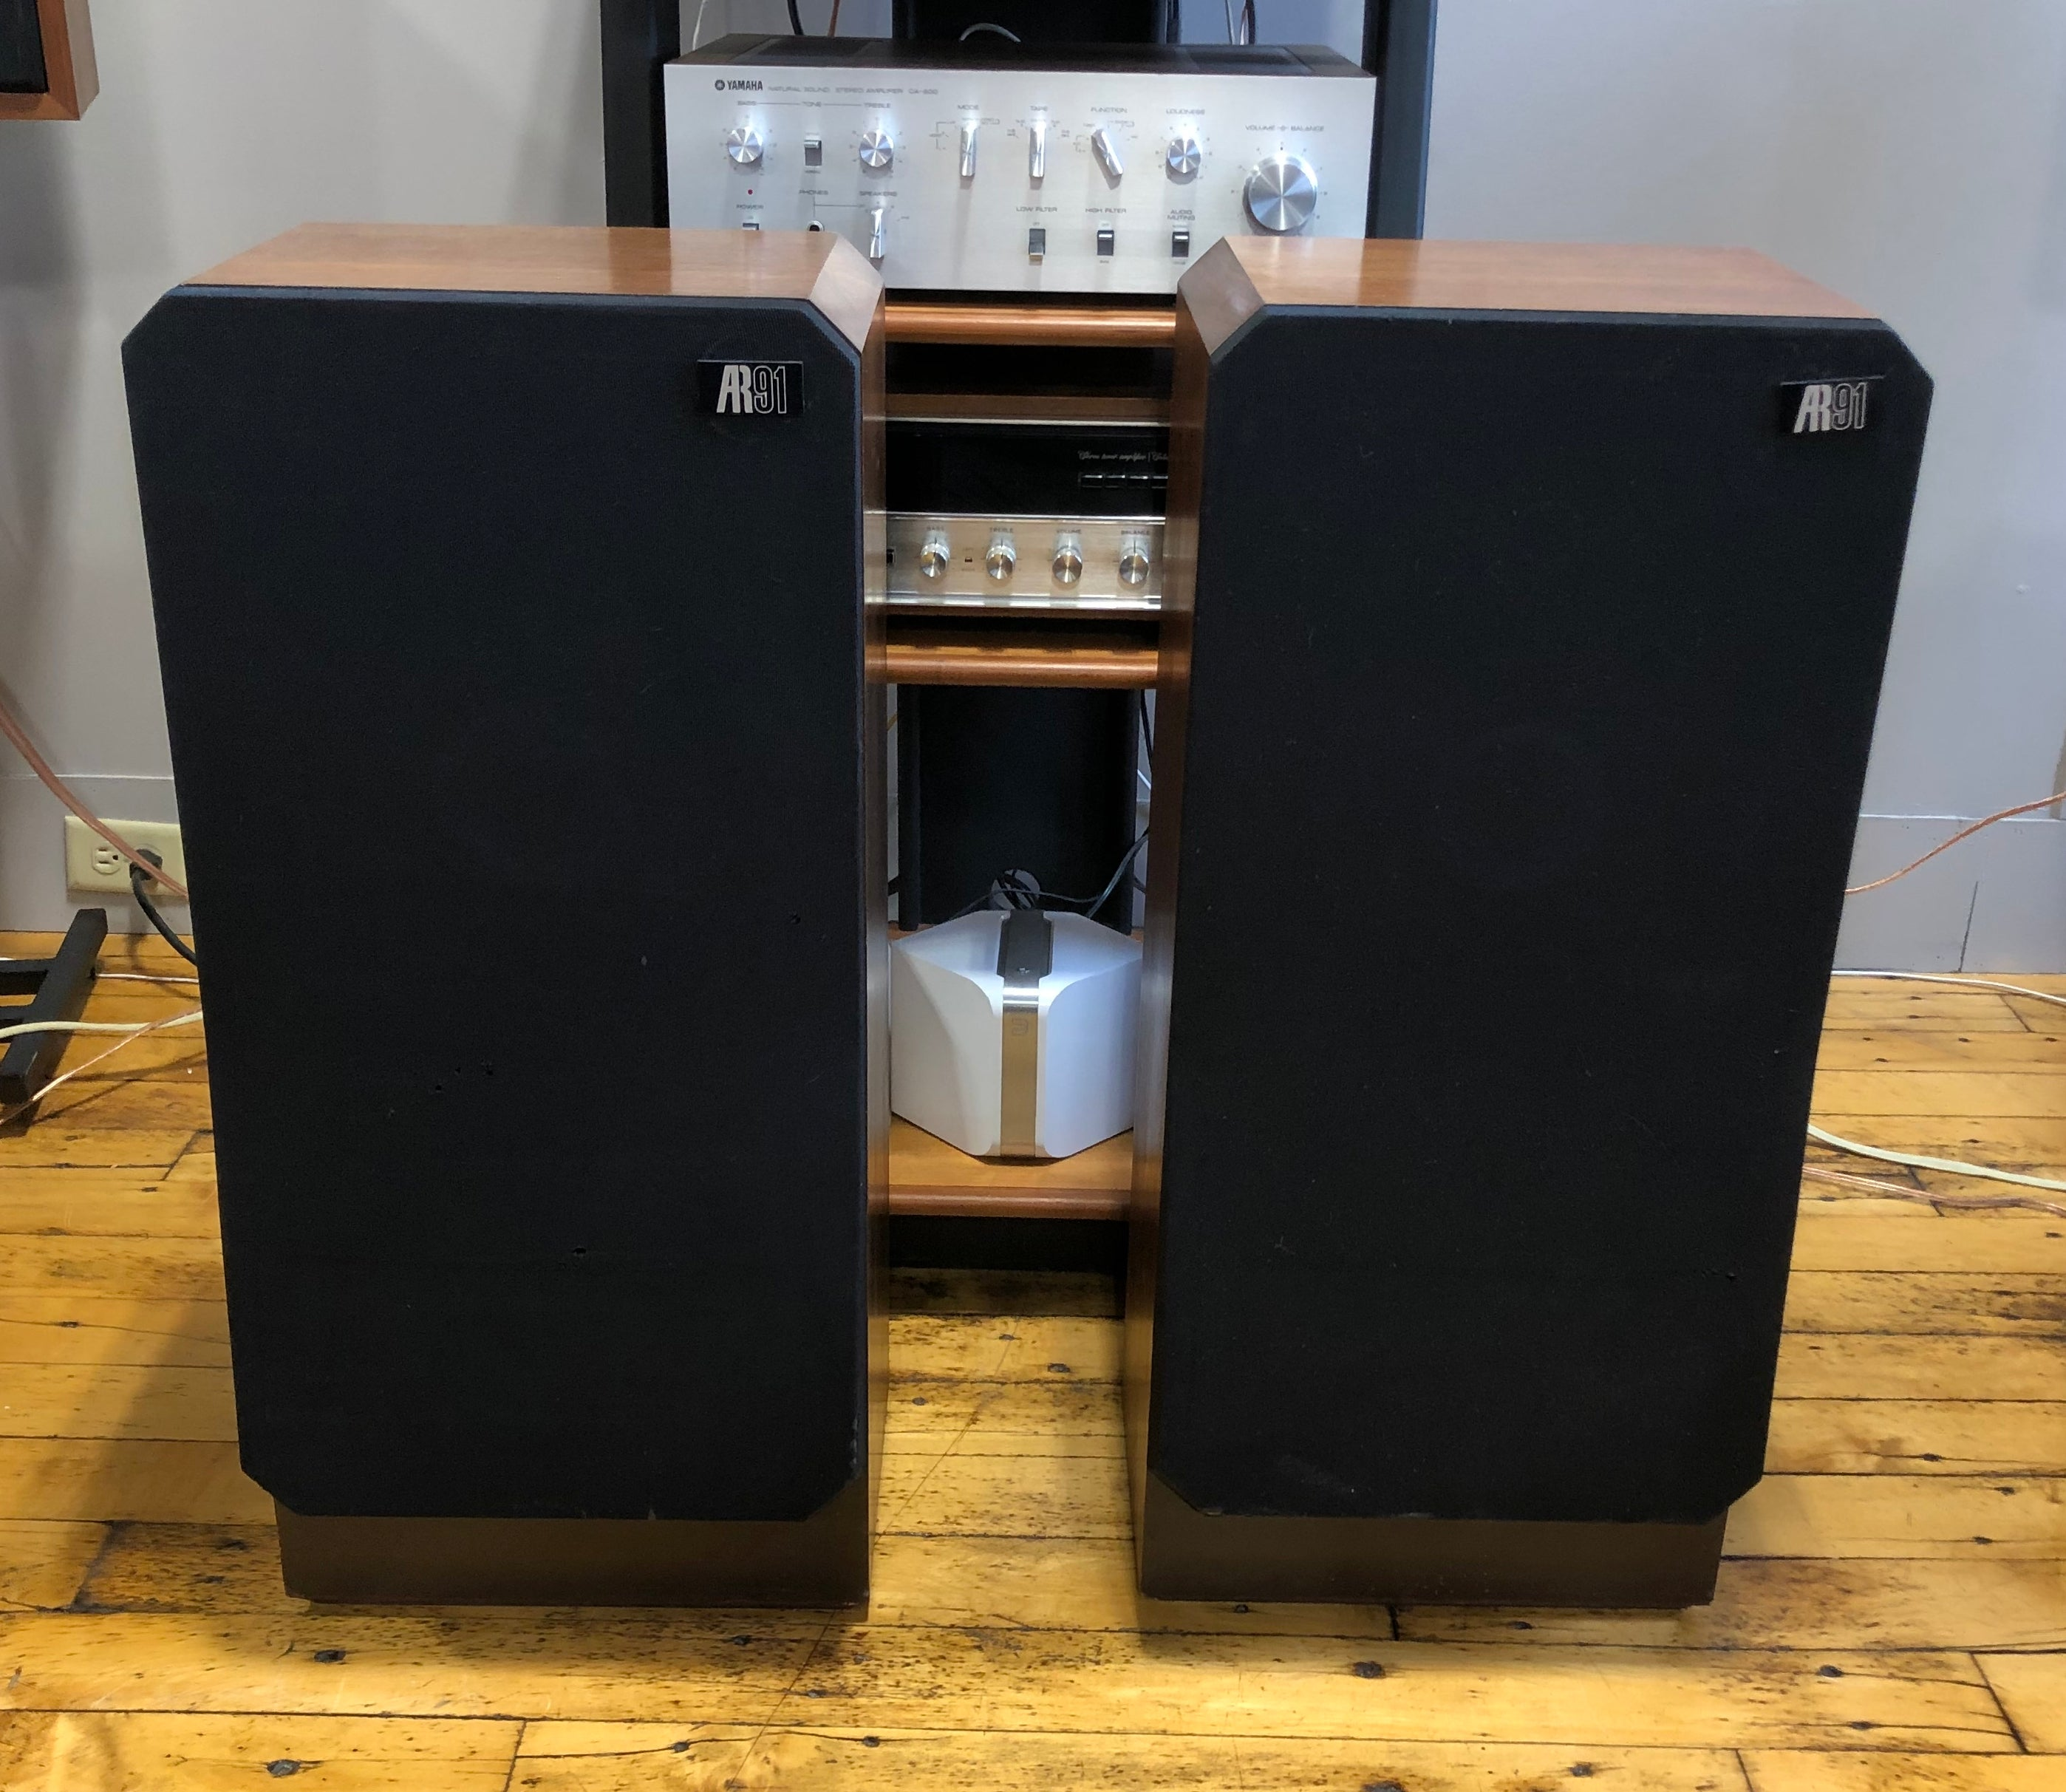 Acoustic Research AR91 3-way Tower Speakers